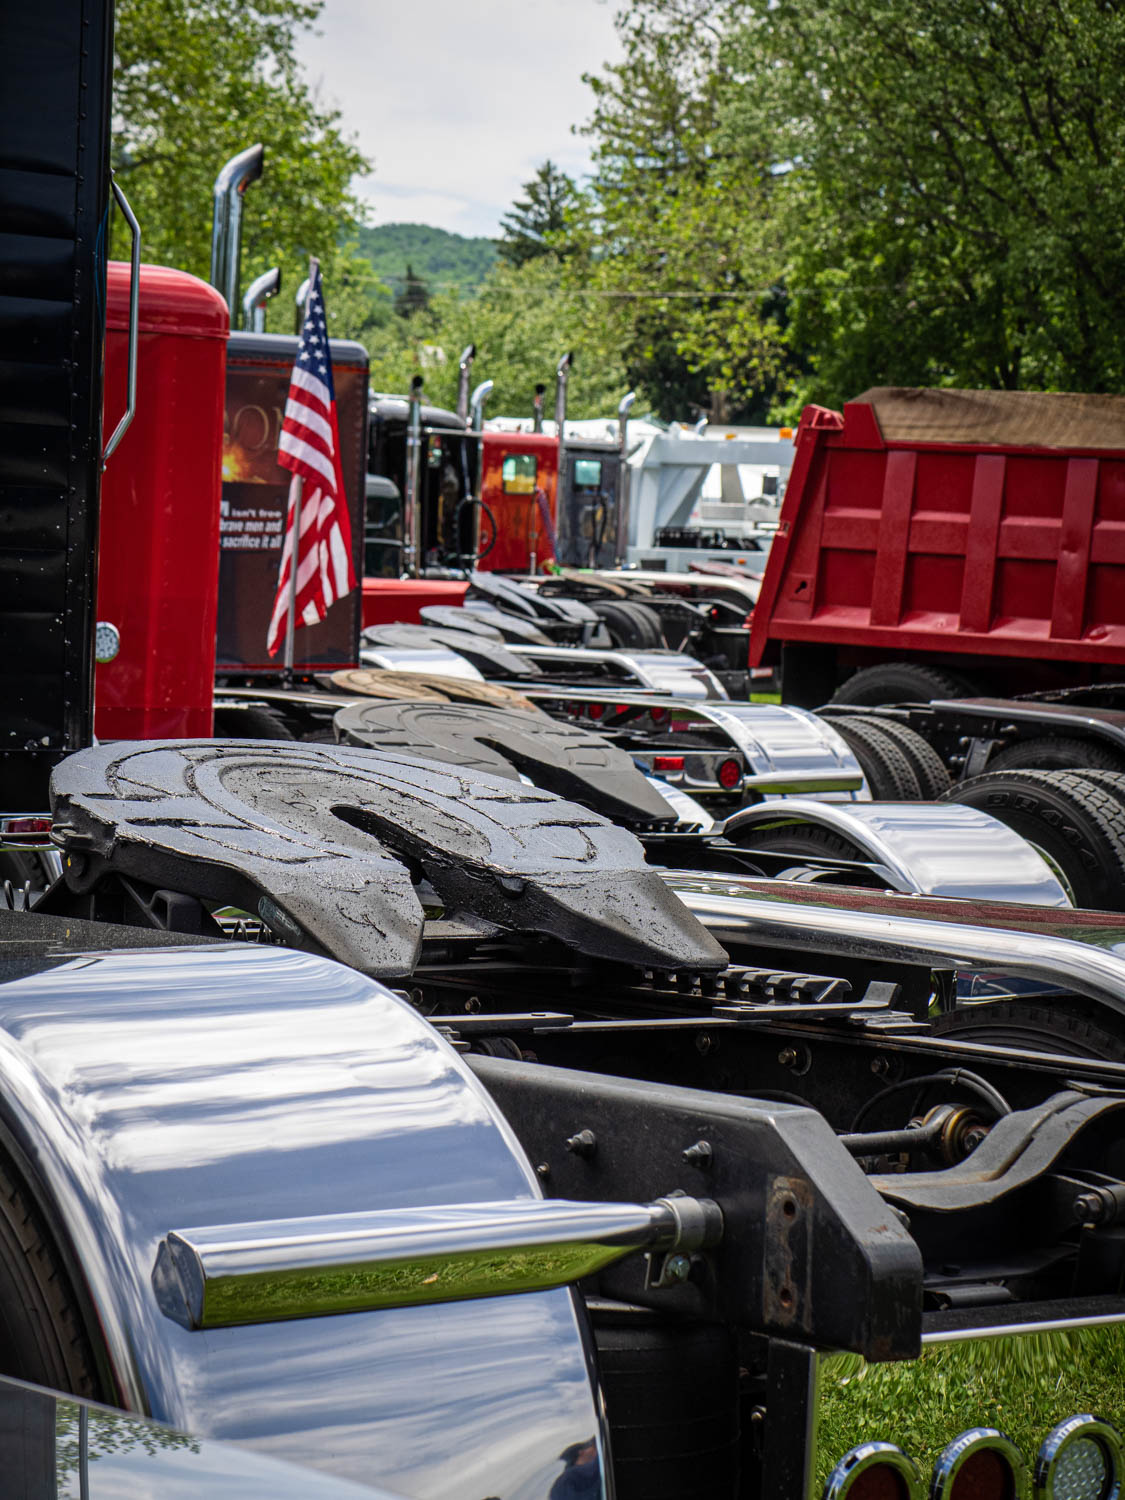 Many of the show trucks in the park were also work trucks, which meant greasy fifth wheels ready to hook up and go.